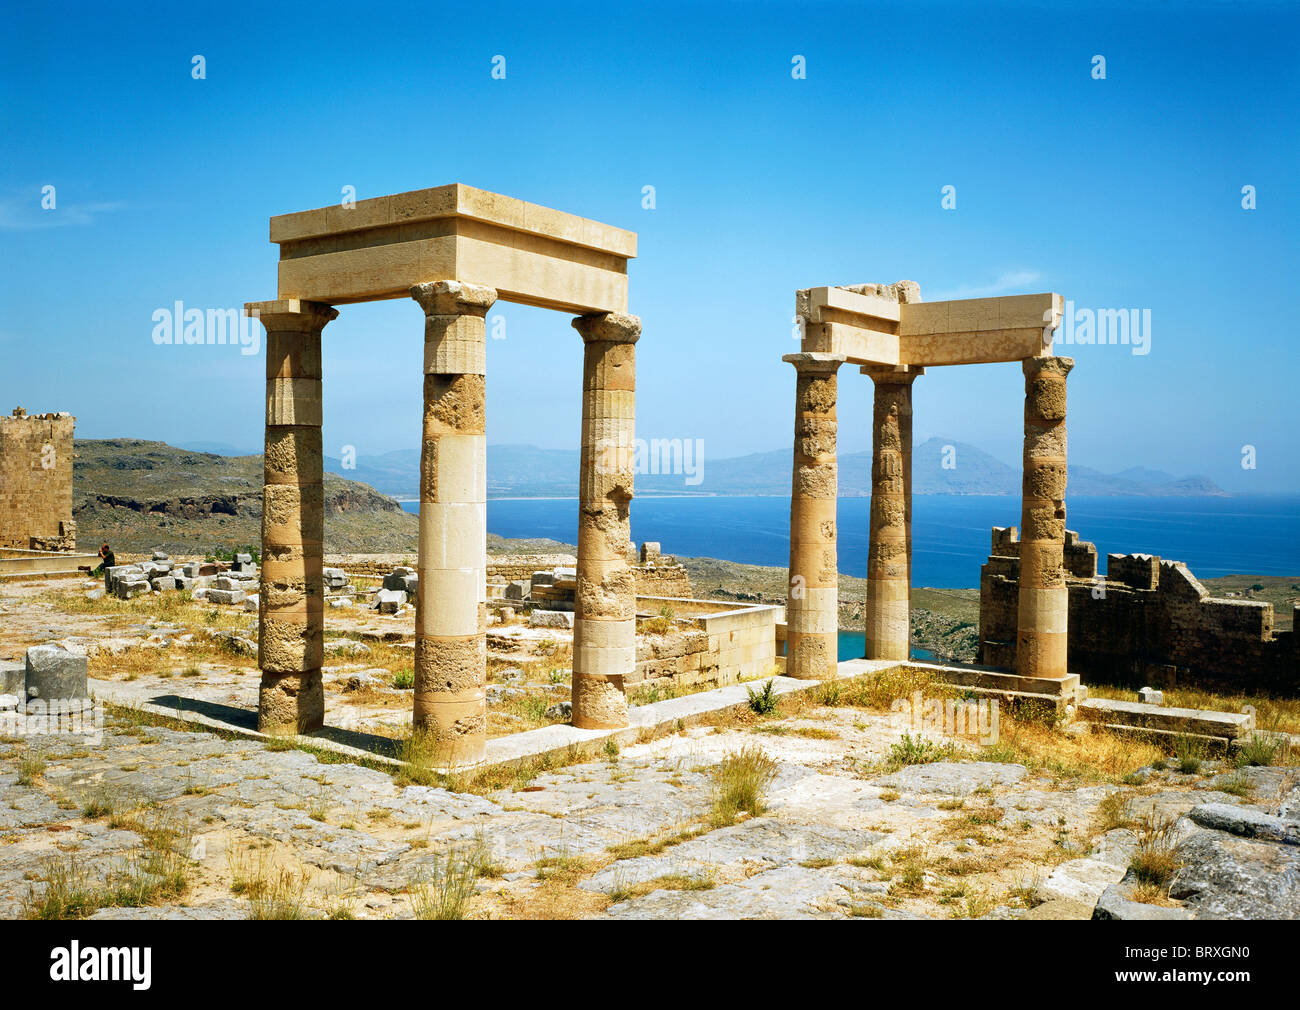 Temple of Anthena Lindia, Acropolis, Lindos, Rhodes, Dodecanese, Greece, Europe - Stock Image